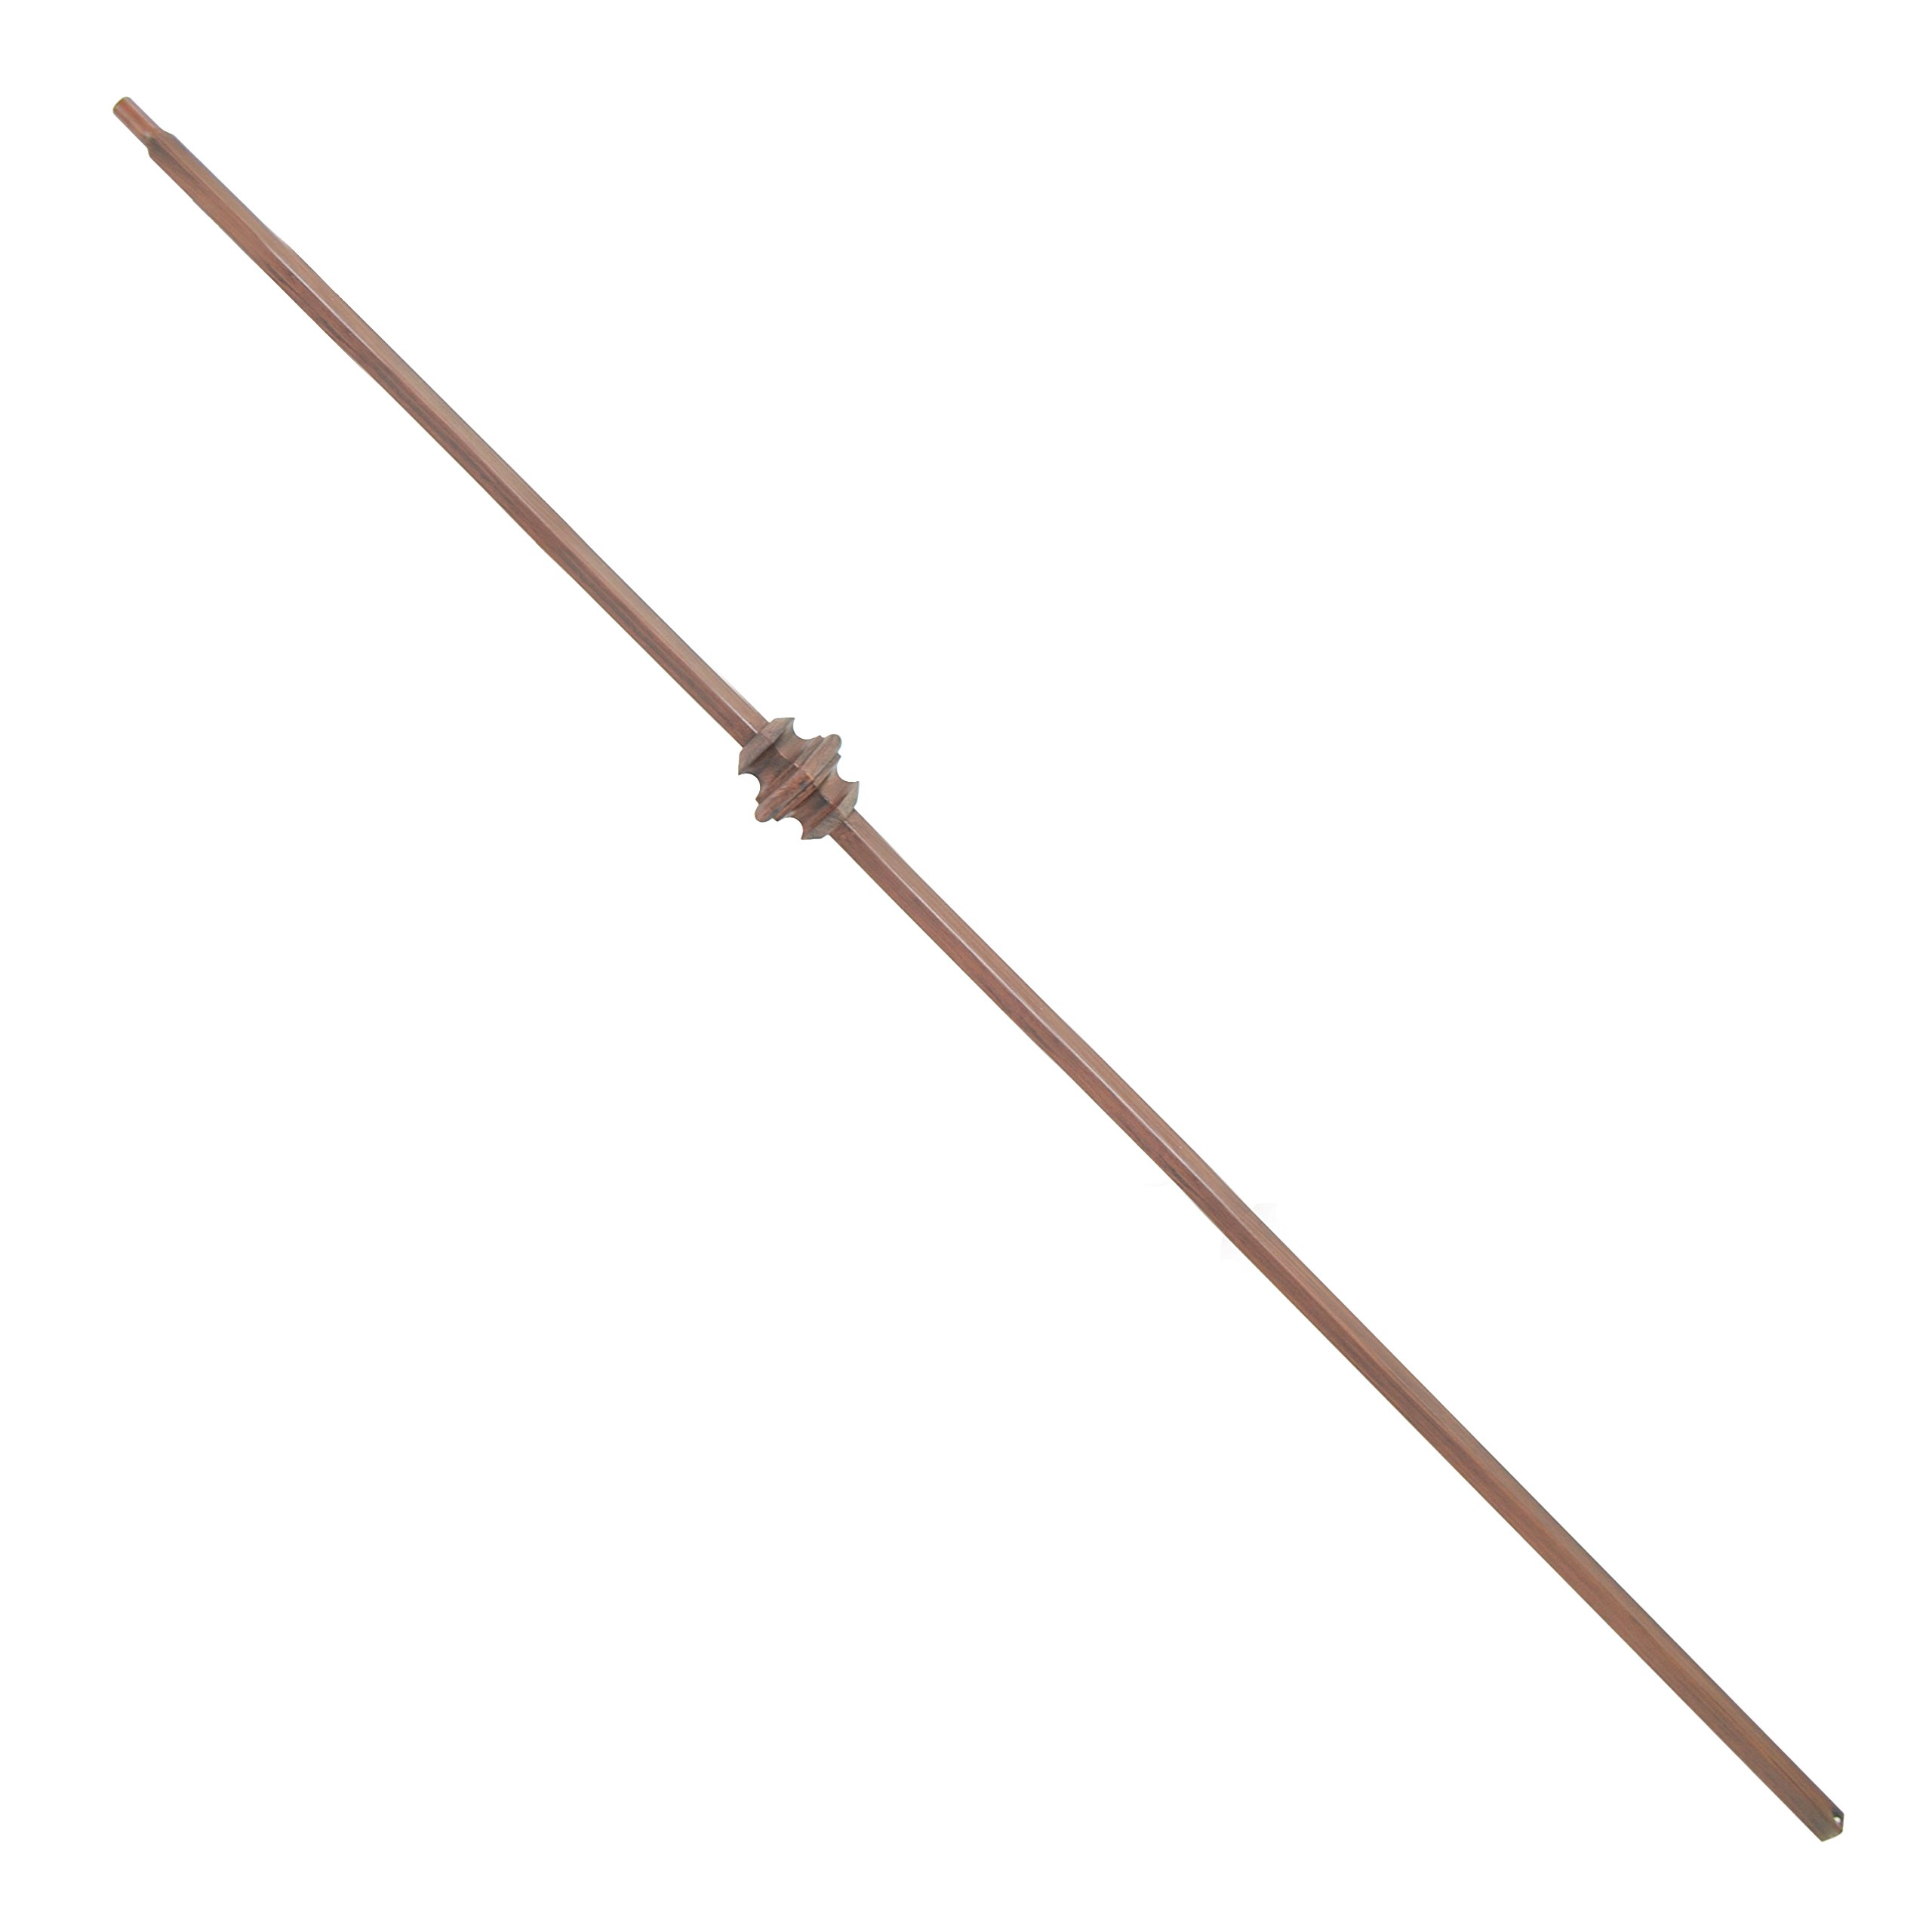 ALEKO BSTR010B Baluster Stair Spindle Supply Single Knuckle Design 1/2 Inch Oil Rubbed Cast Iron Bronze Finished Lot of 10